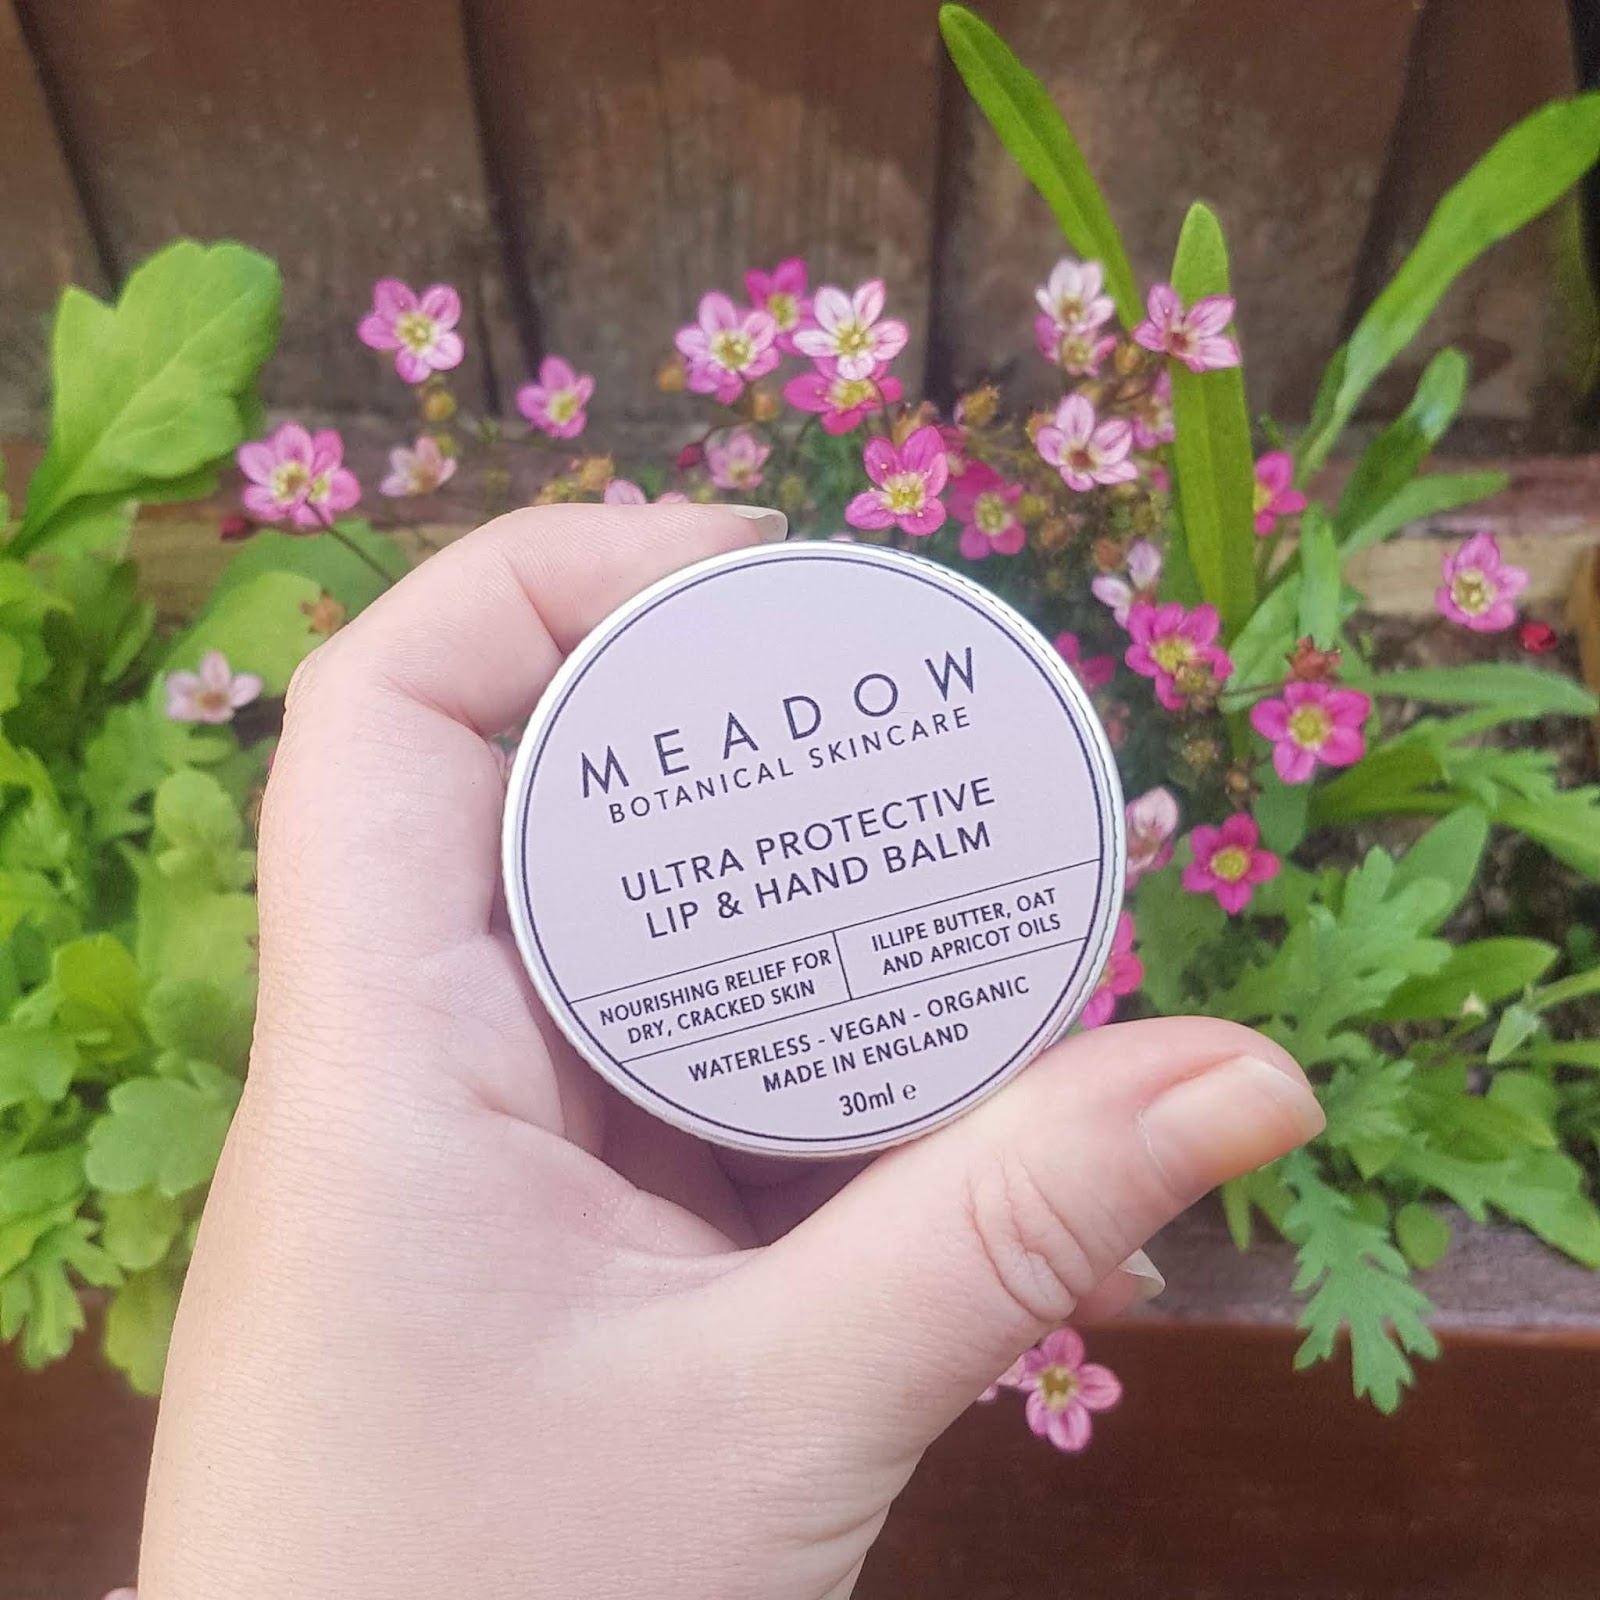 Meadow Skincare Ultra Protective Lip & Hand Balm Review